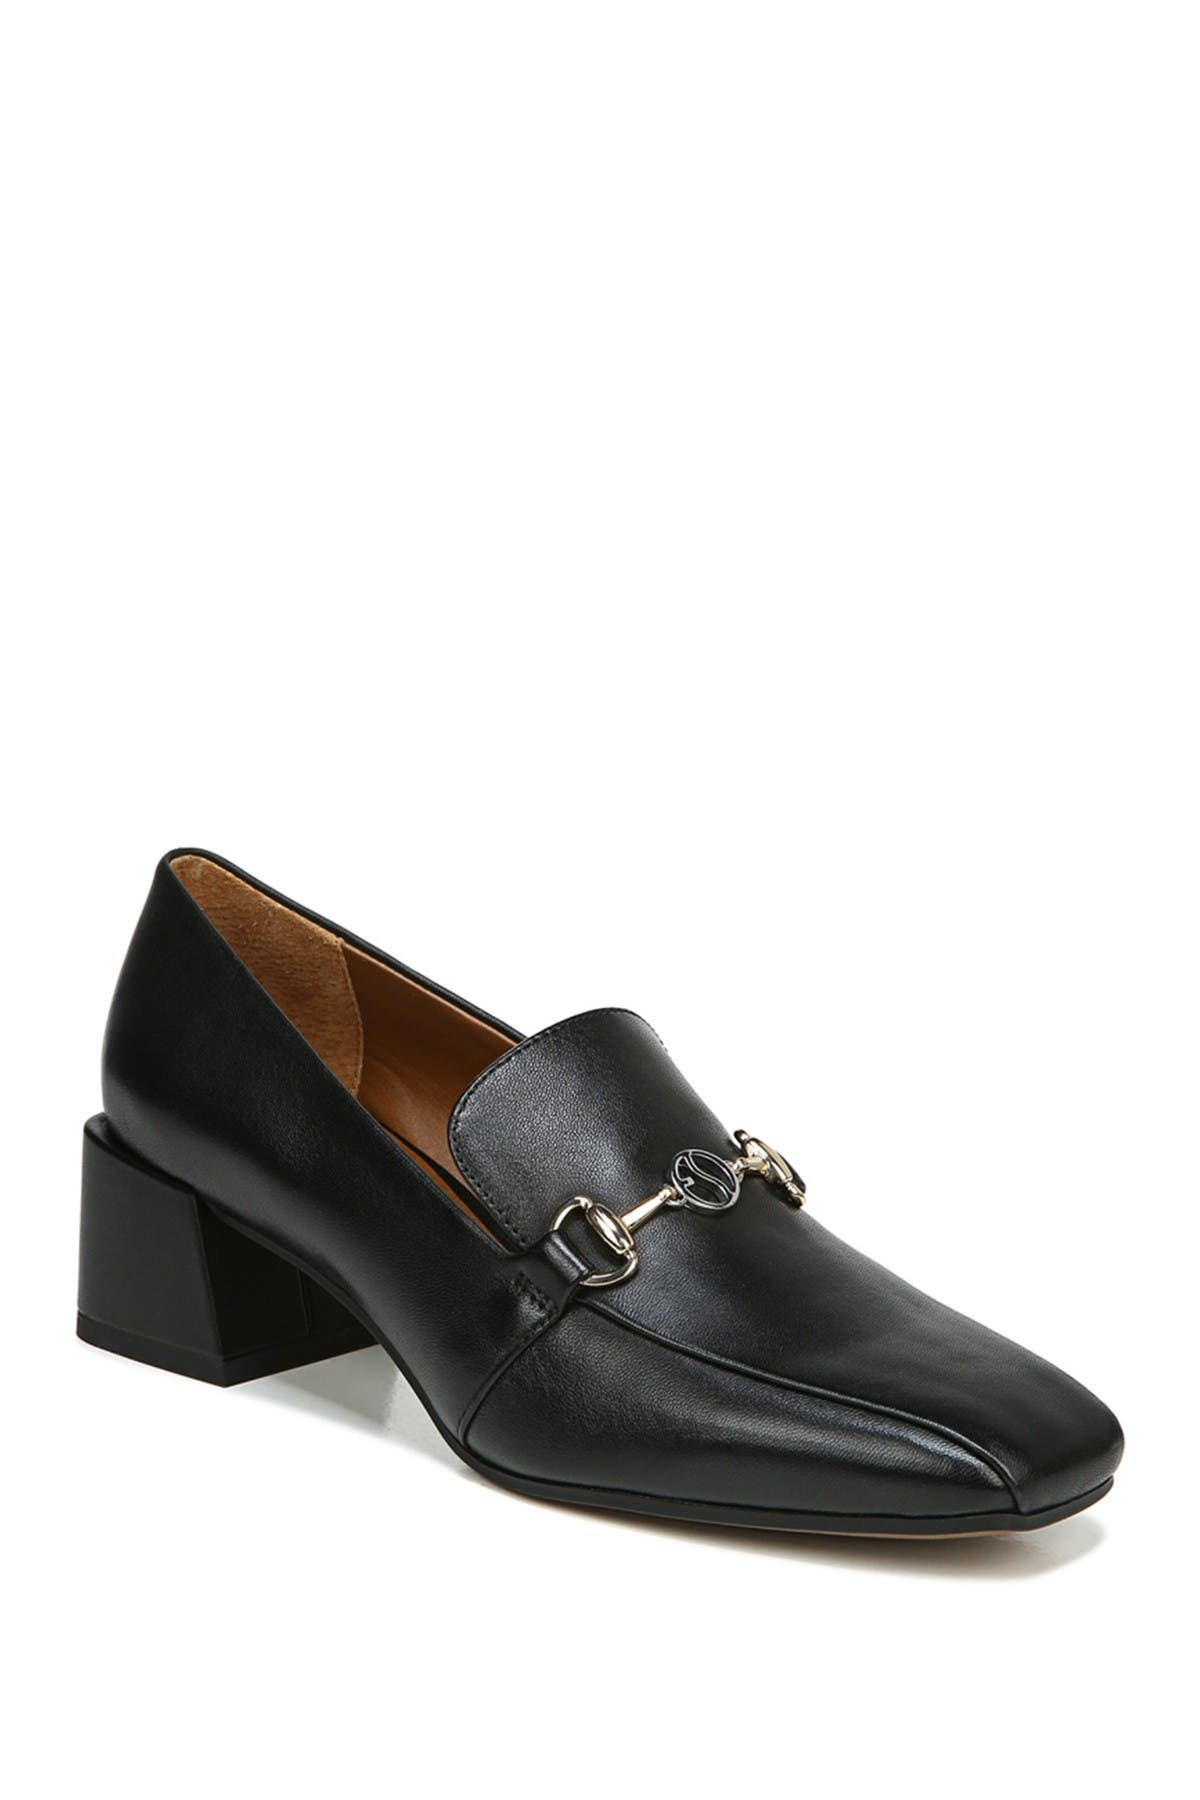 Image of Franco Sarto Laurita Leather Loafer